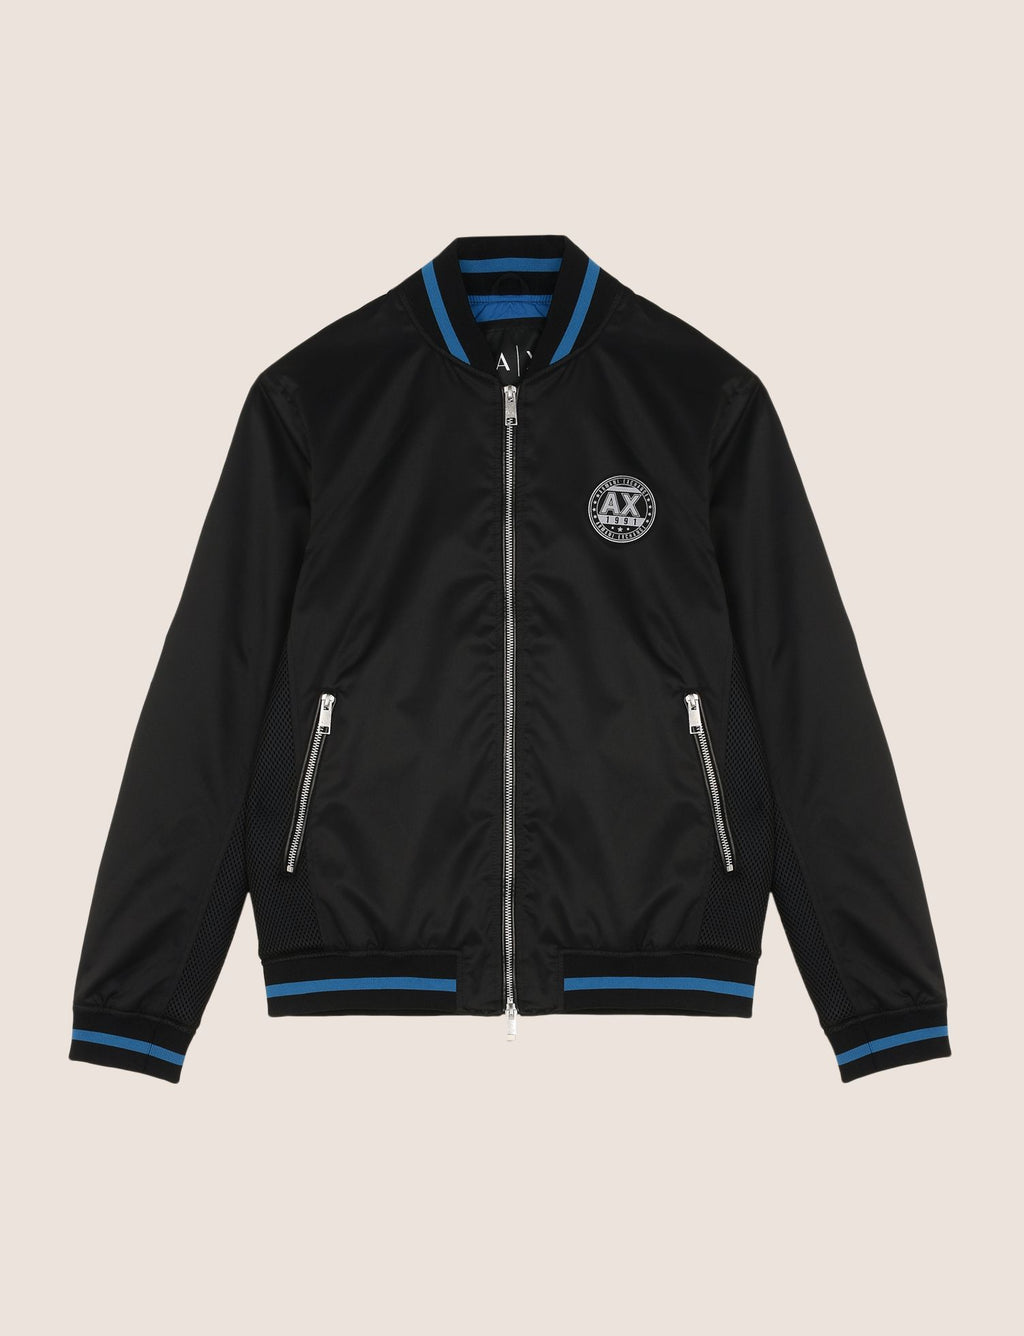 Armani Exchange Jacket